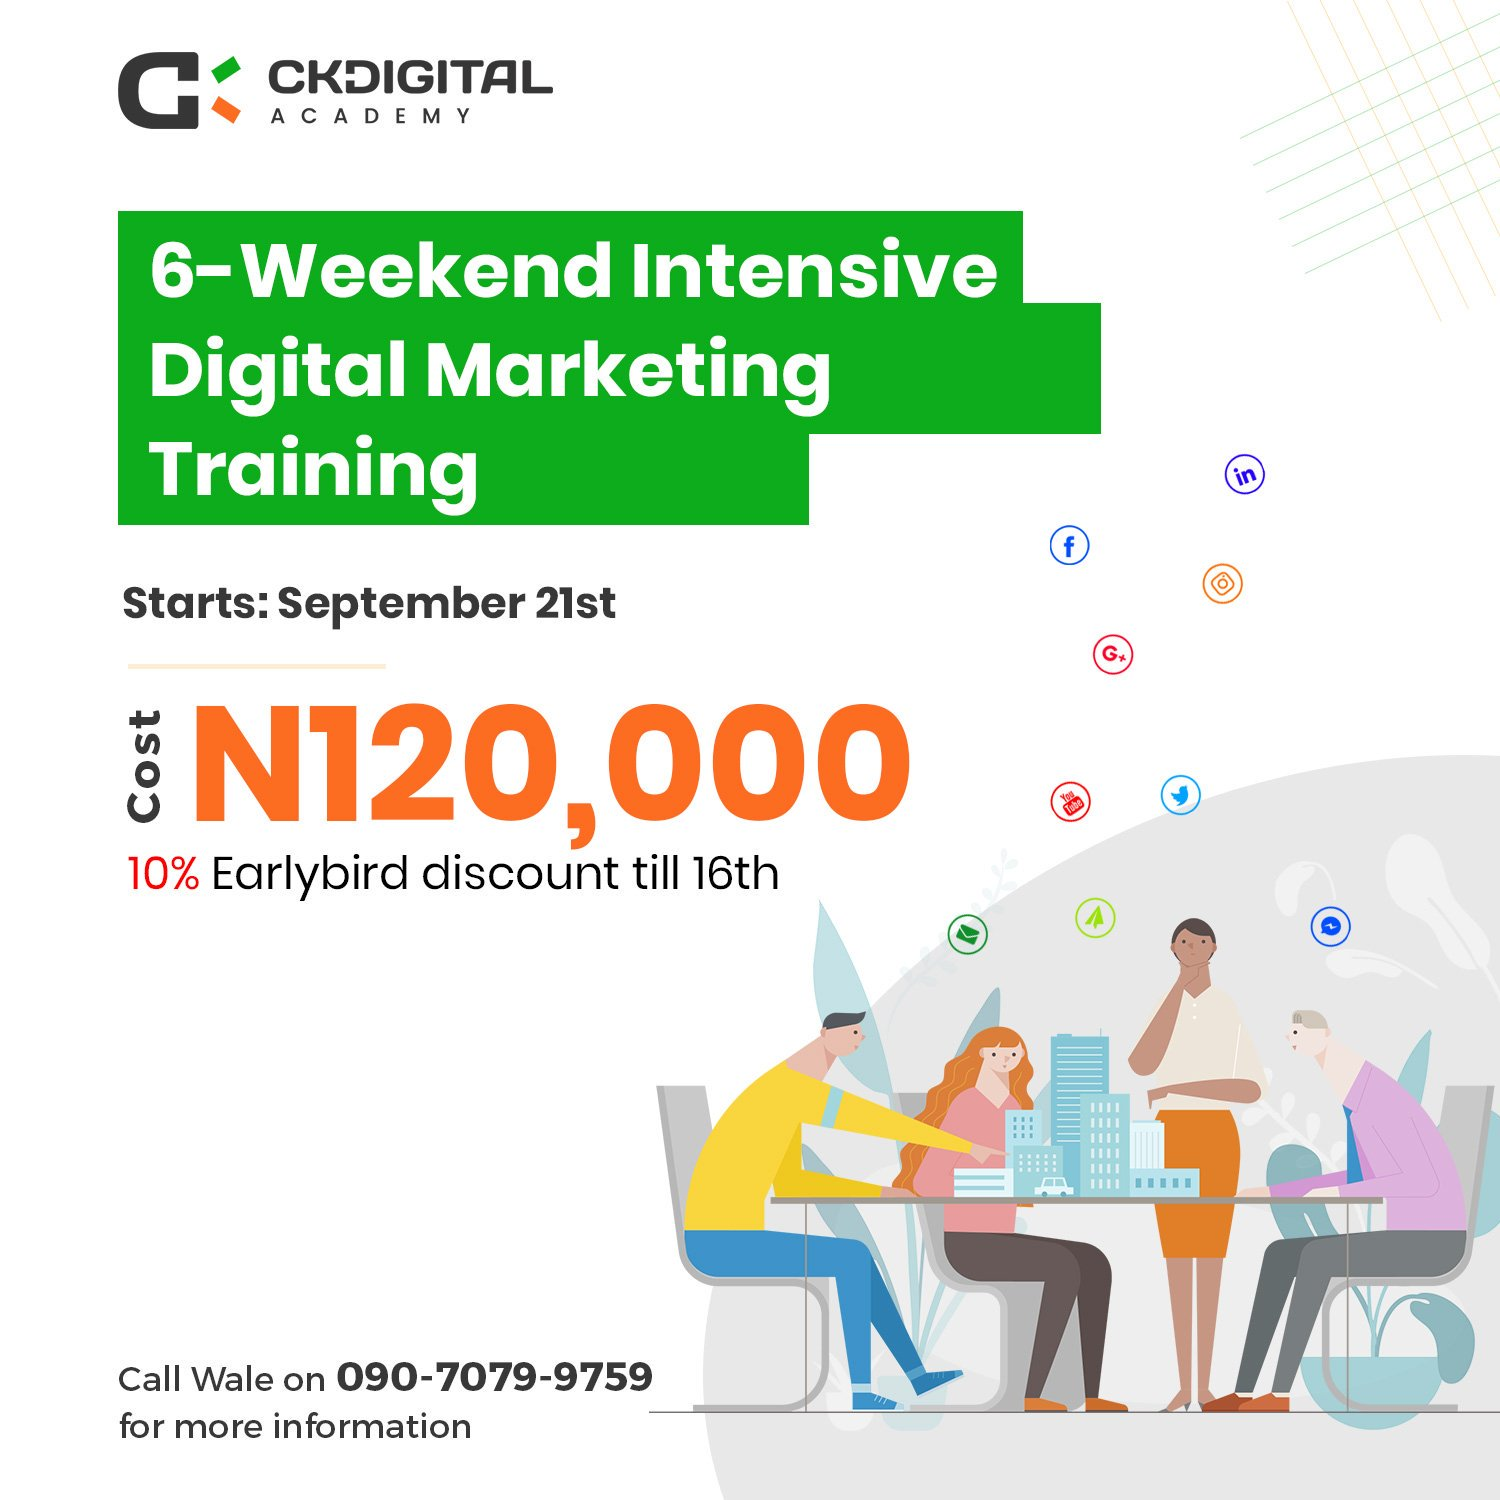 Ckdigital Academy On Twitter Dear Graduate Business Owner Job Seeker Do You Know Many Companies In Nigeria And Abroad Are Looking For Digital Marketers With The Right Skills And Practical Knowledge To Help Them